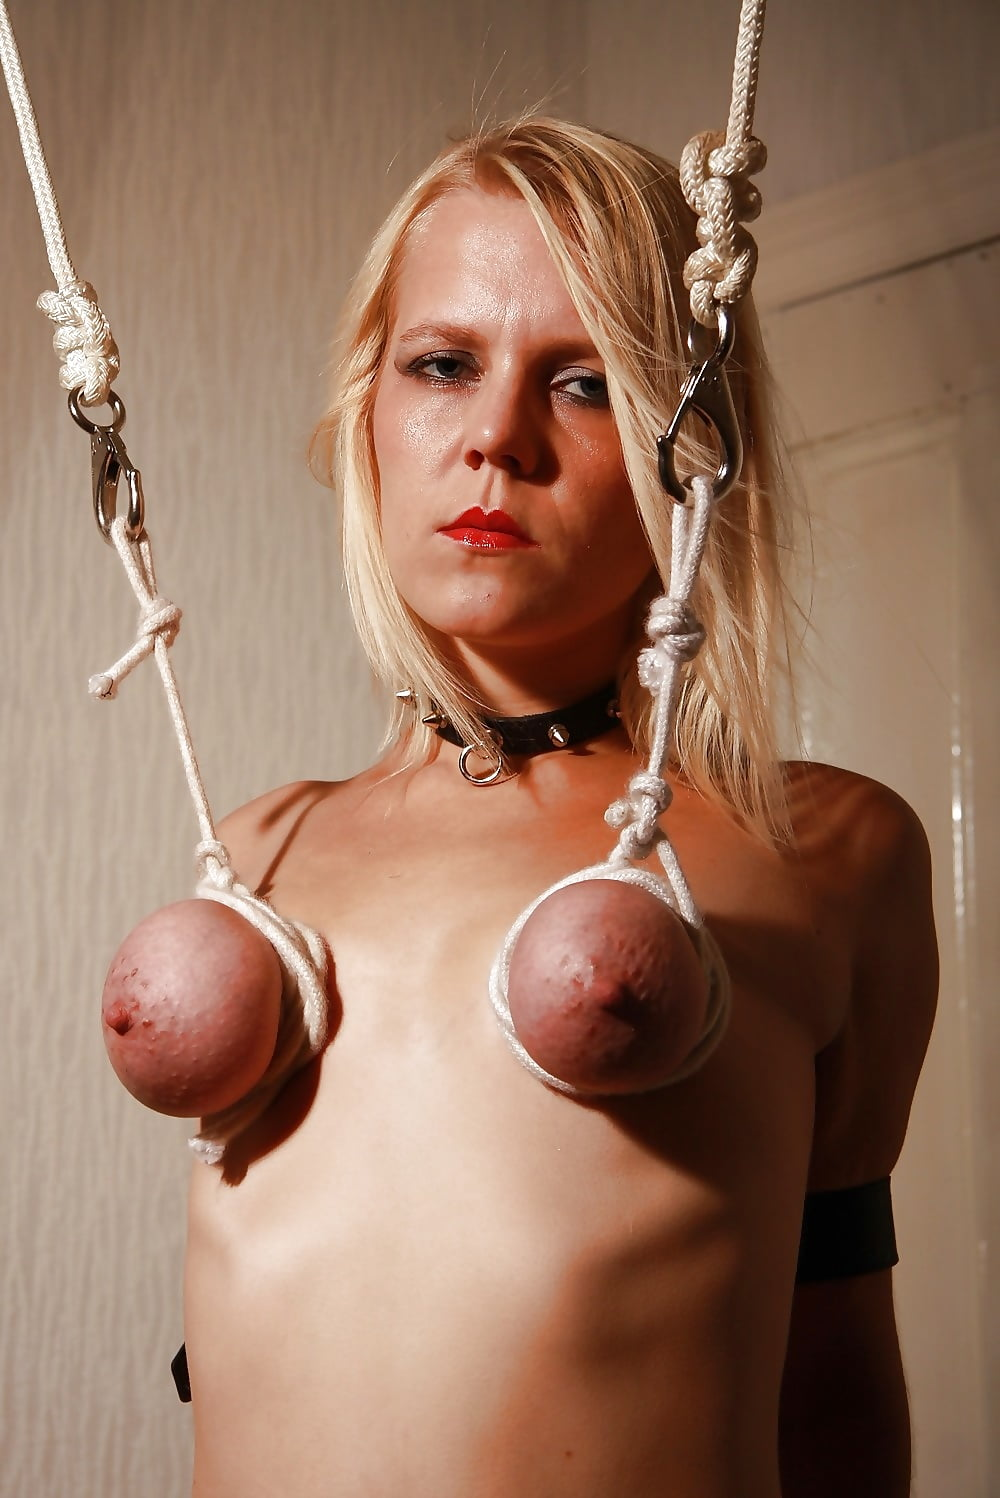 clamped-nipples-gallery-naked-fat-haveing-sex